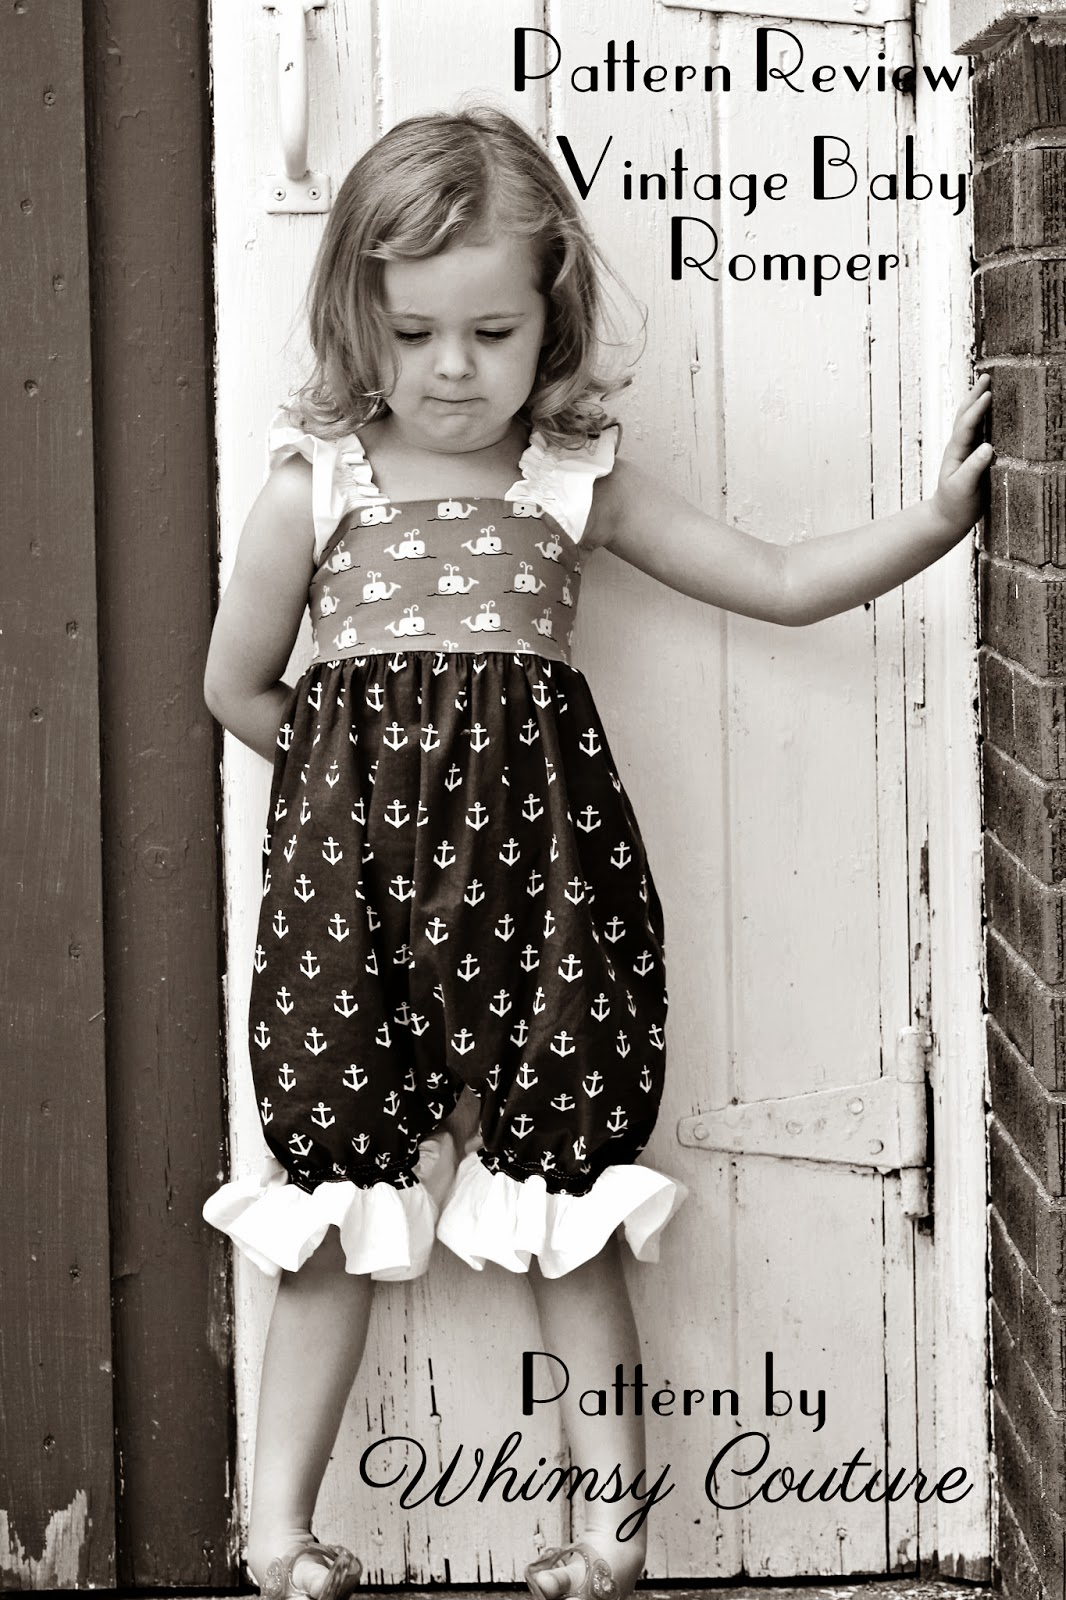 Vintage Baby Romper By Whimsy Couture Pattern Revolution